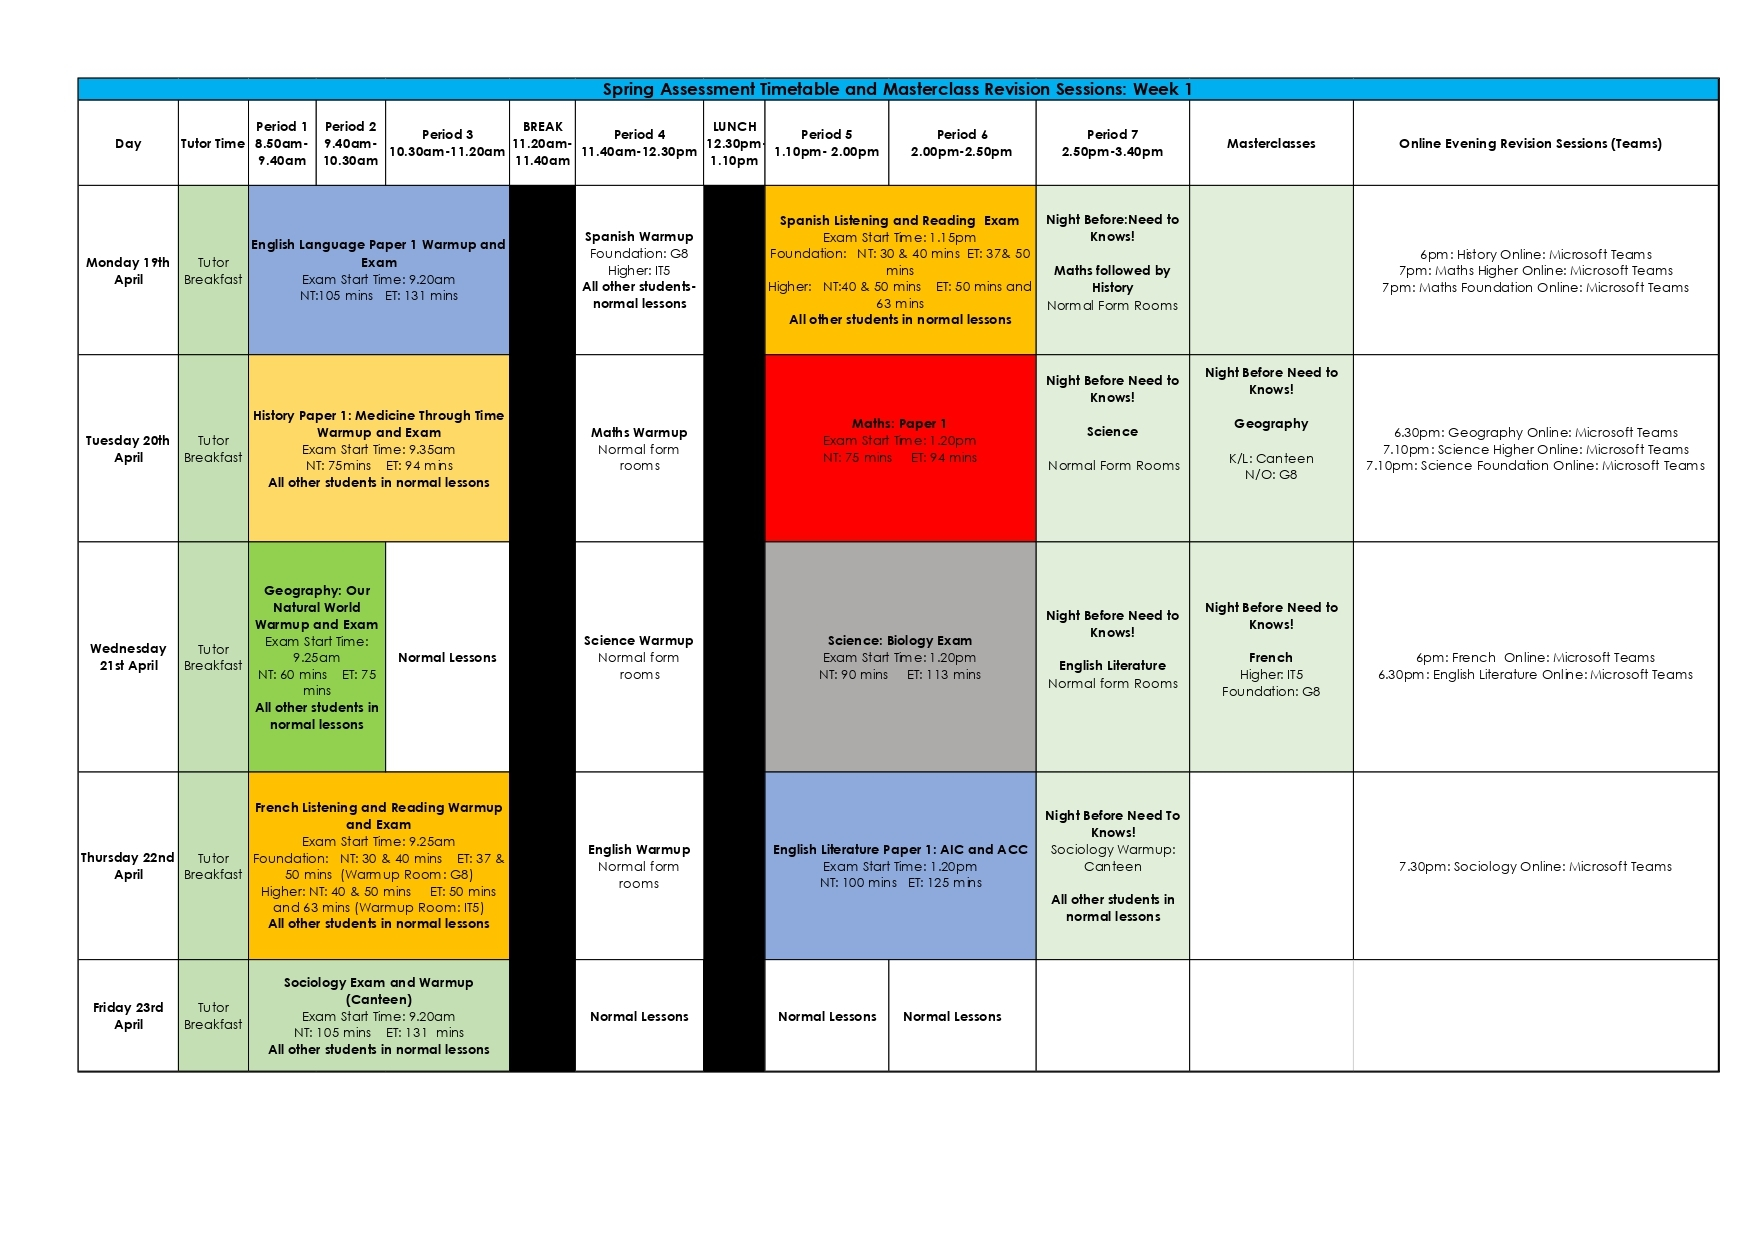 Week 1 spring assessment timetable and masterclass revision sessions page 0001